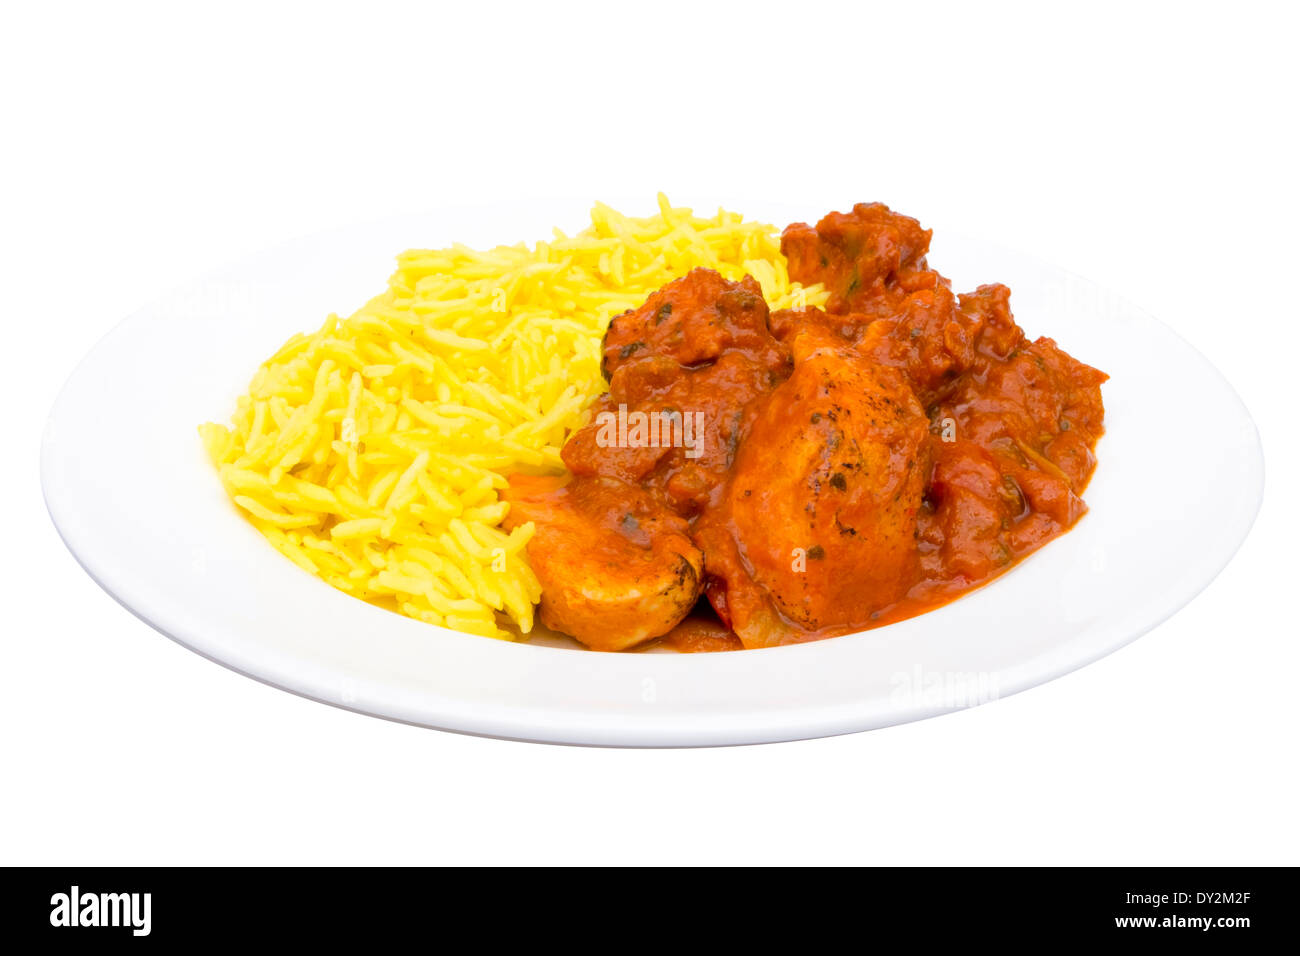 Chicken Jalfrezi and Pilau Rice dish cut out against a white background. - Stock Image